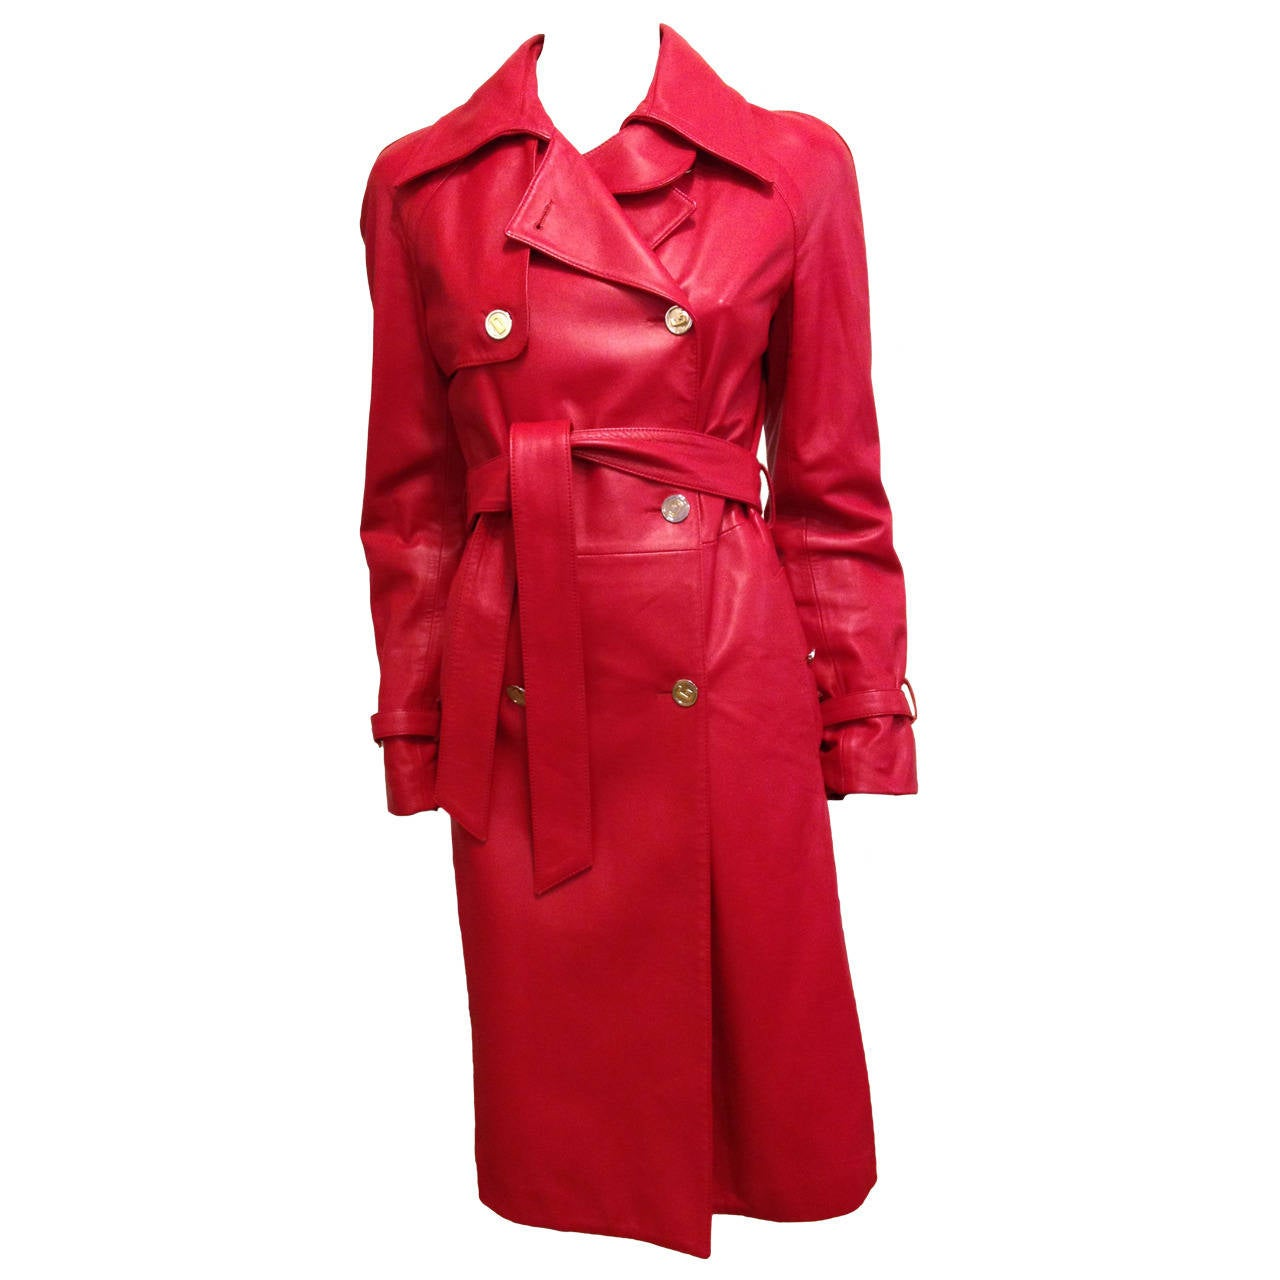 8e511217adc Dolce and Gabbana Red Leather Trench Coat at 1stdibs